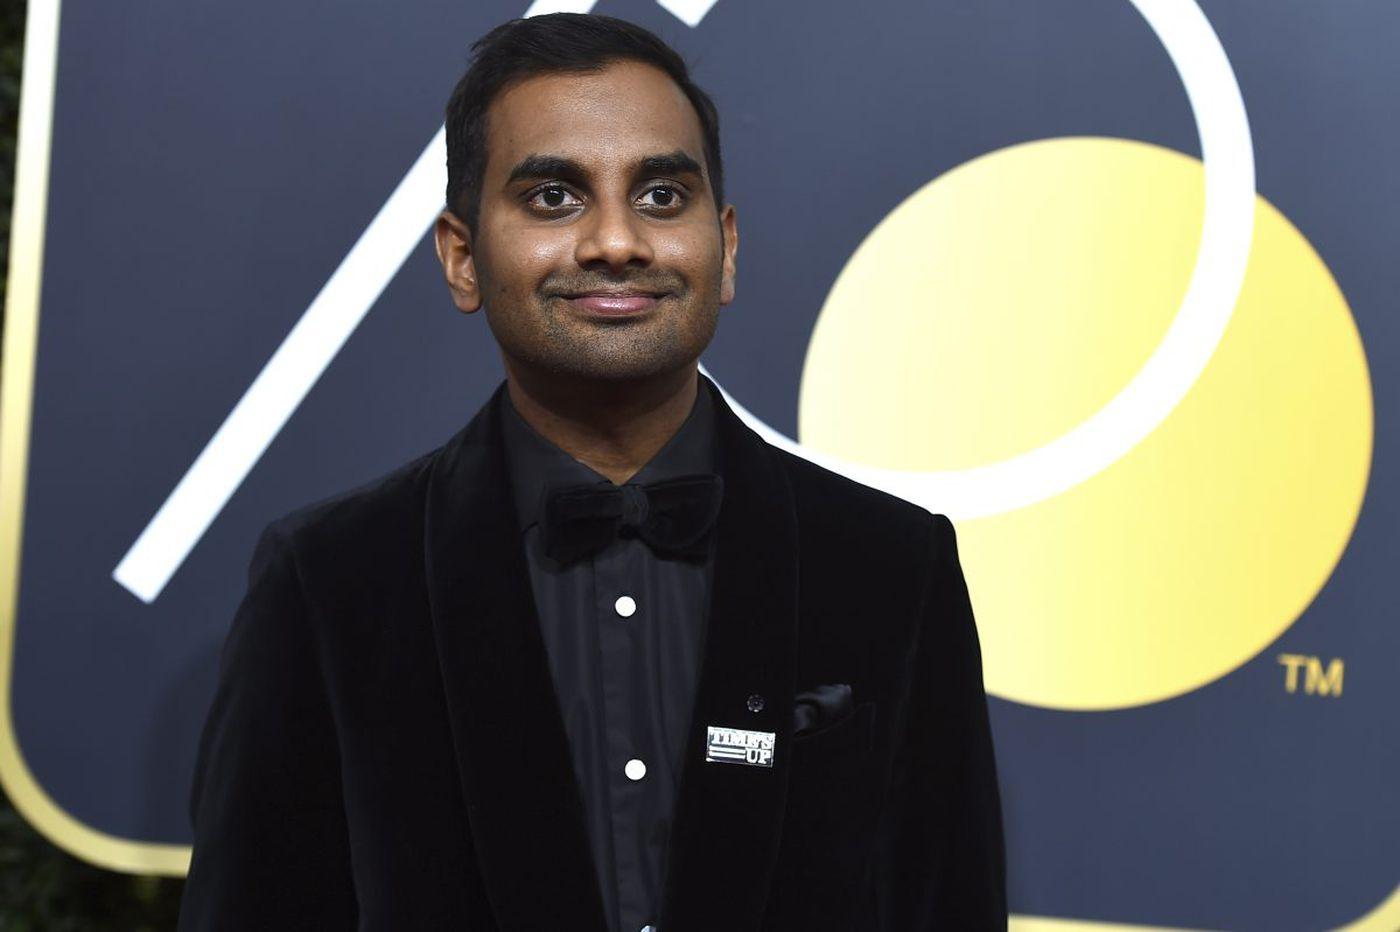 Aziz Ansari and his accuser are both delusional messes | Elizabeth Wellington